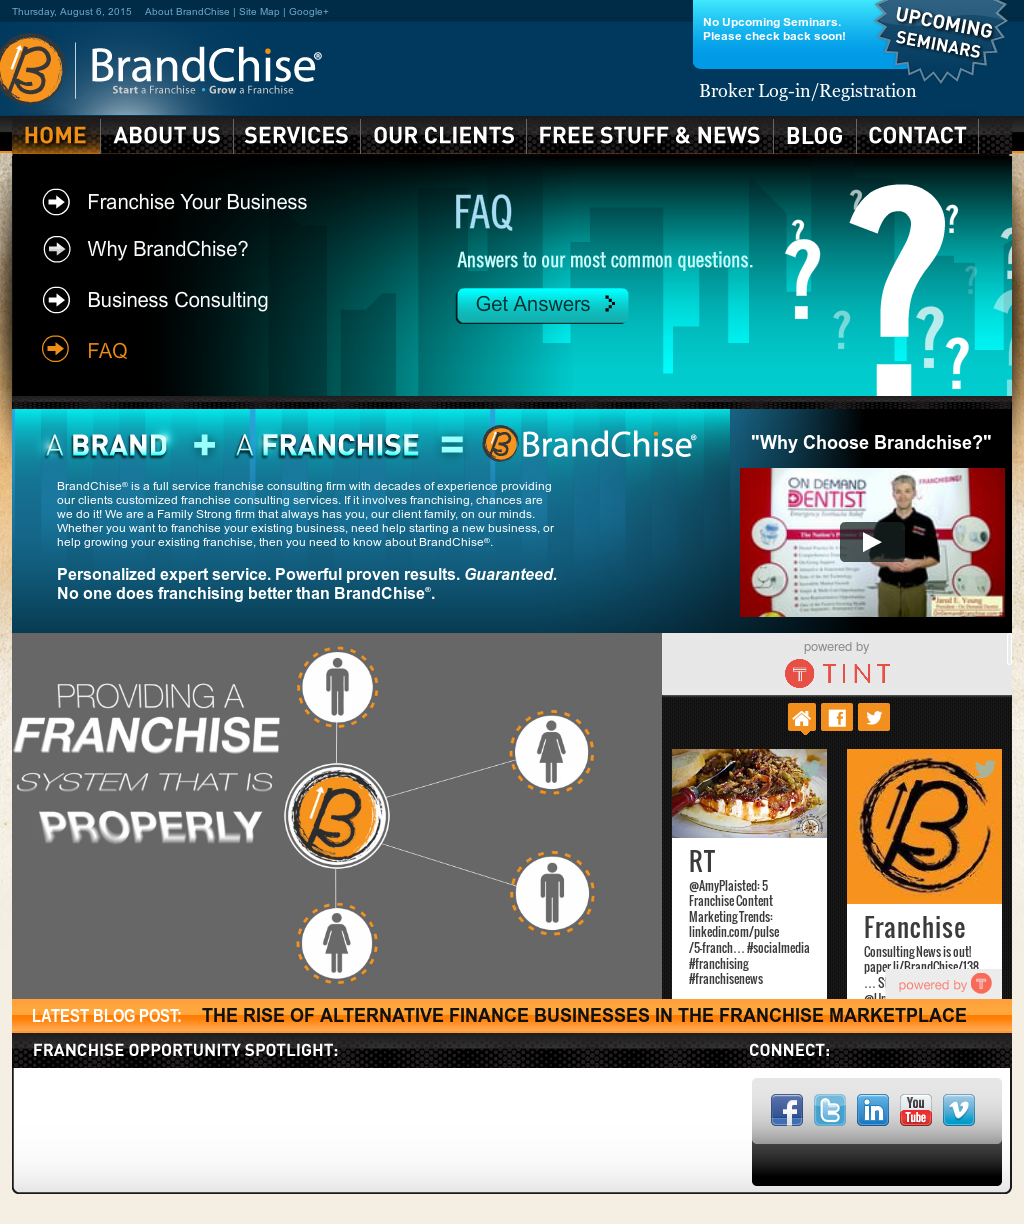 Brandchise Competitors, Revenue and Employees - Owler Company Profile